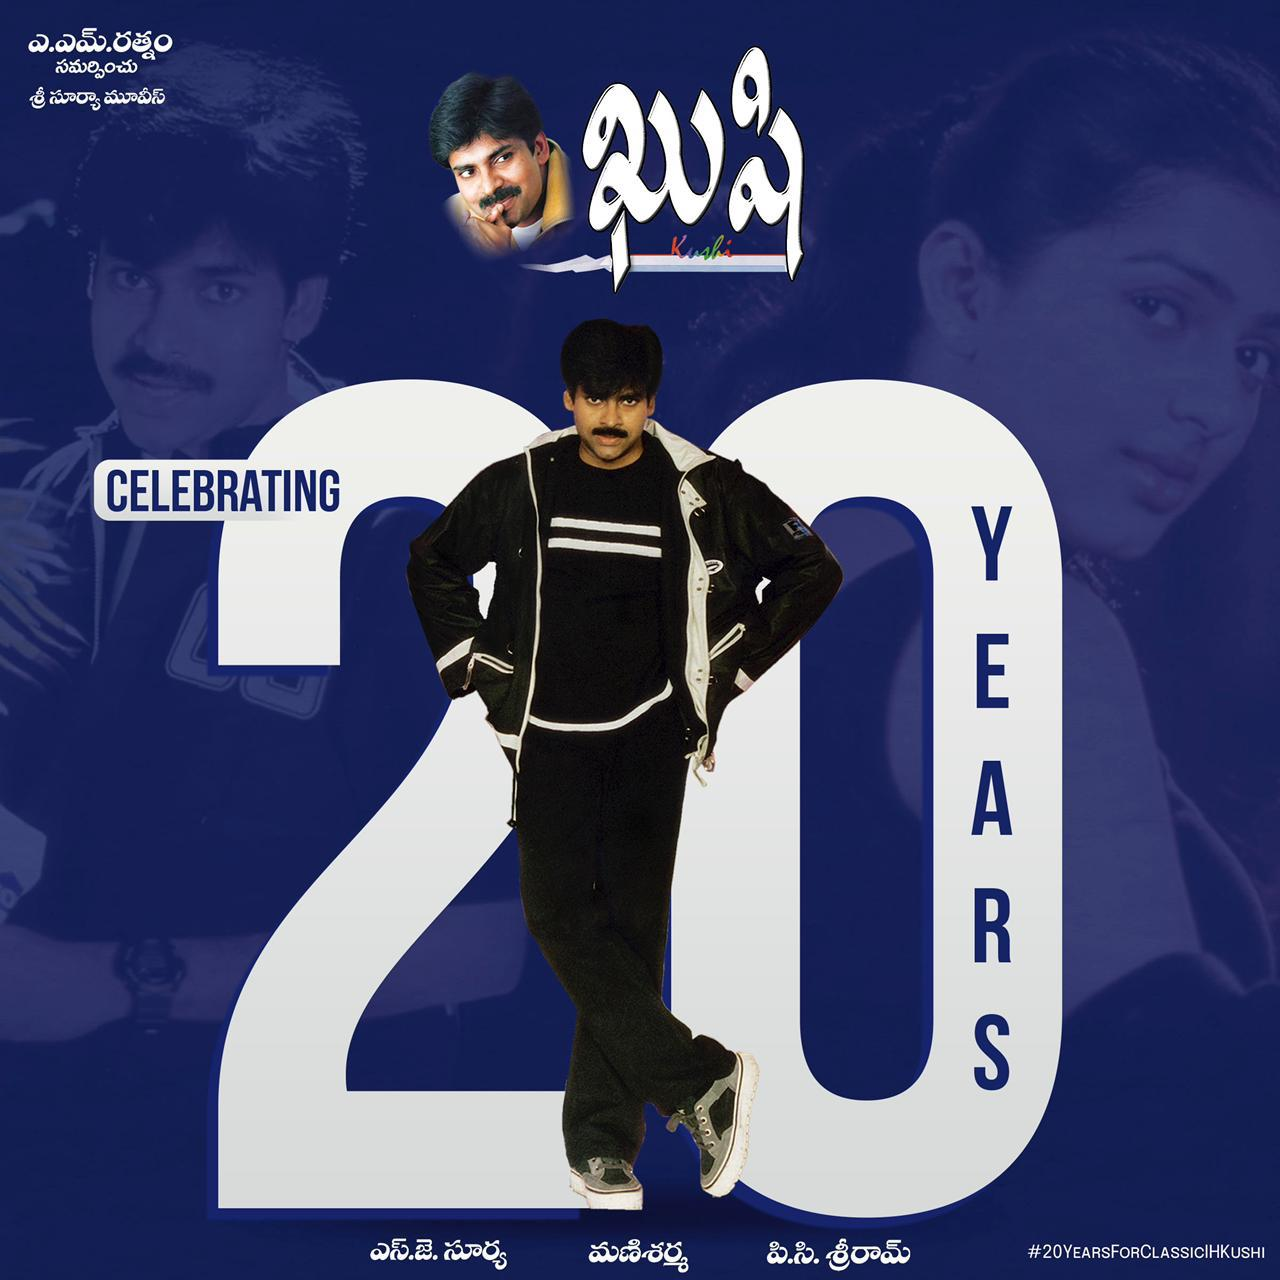 Pawan Kalyan's Classical 'kushi' Completes 20 Years Of Release